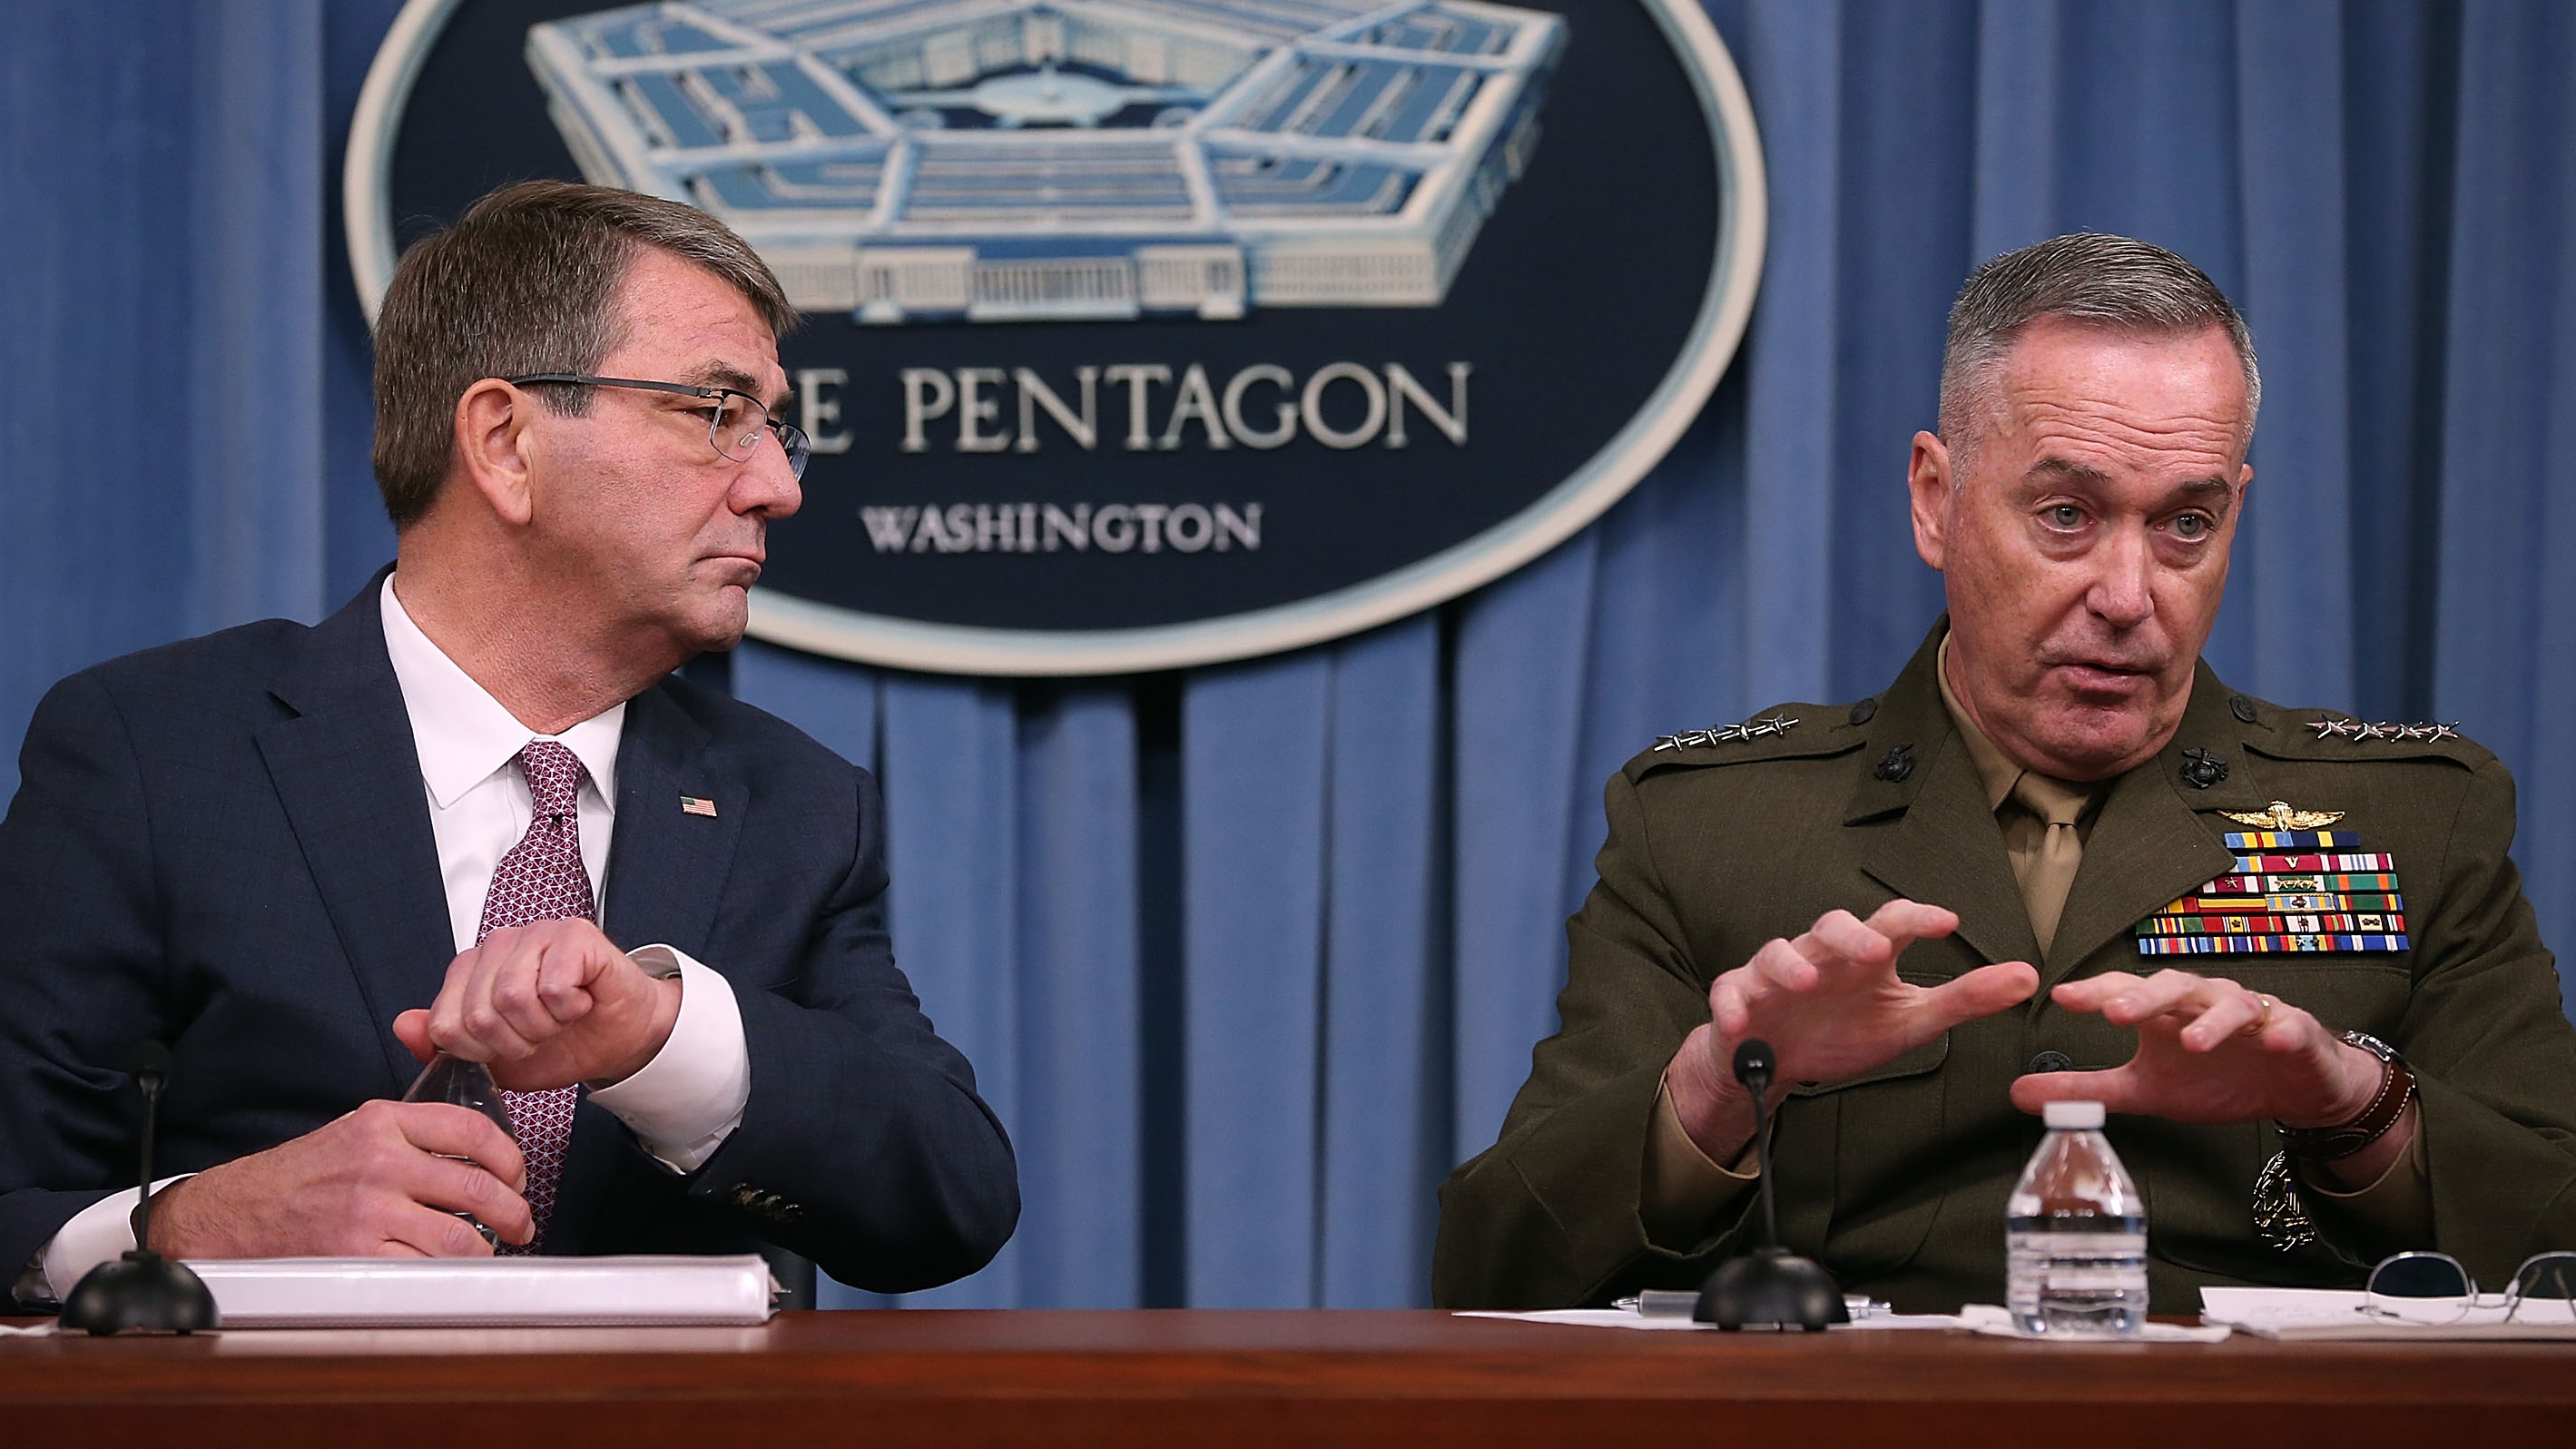 Secretary of Defense Ash Carter (left) says the Pentagon's new hacker program will strengthen America's digital defenses. Carter is seen here with the chairman of the Joint Chiefs of Staff, Gen. Joseph Dunford. Mark Wilson/Getty Images